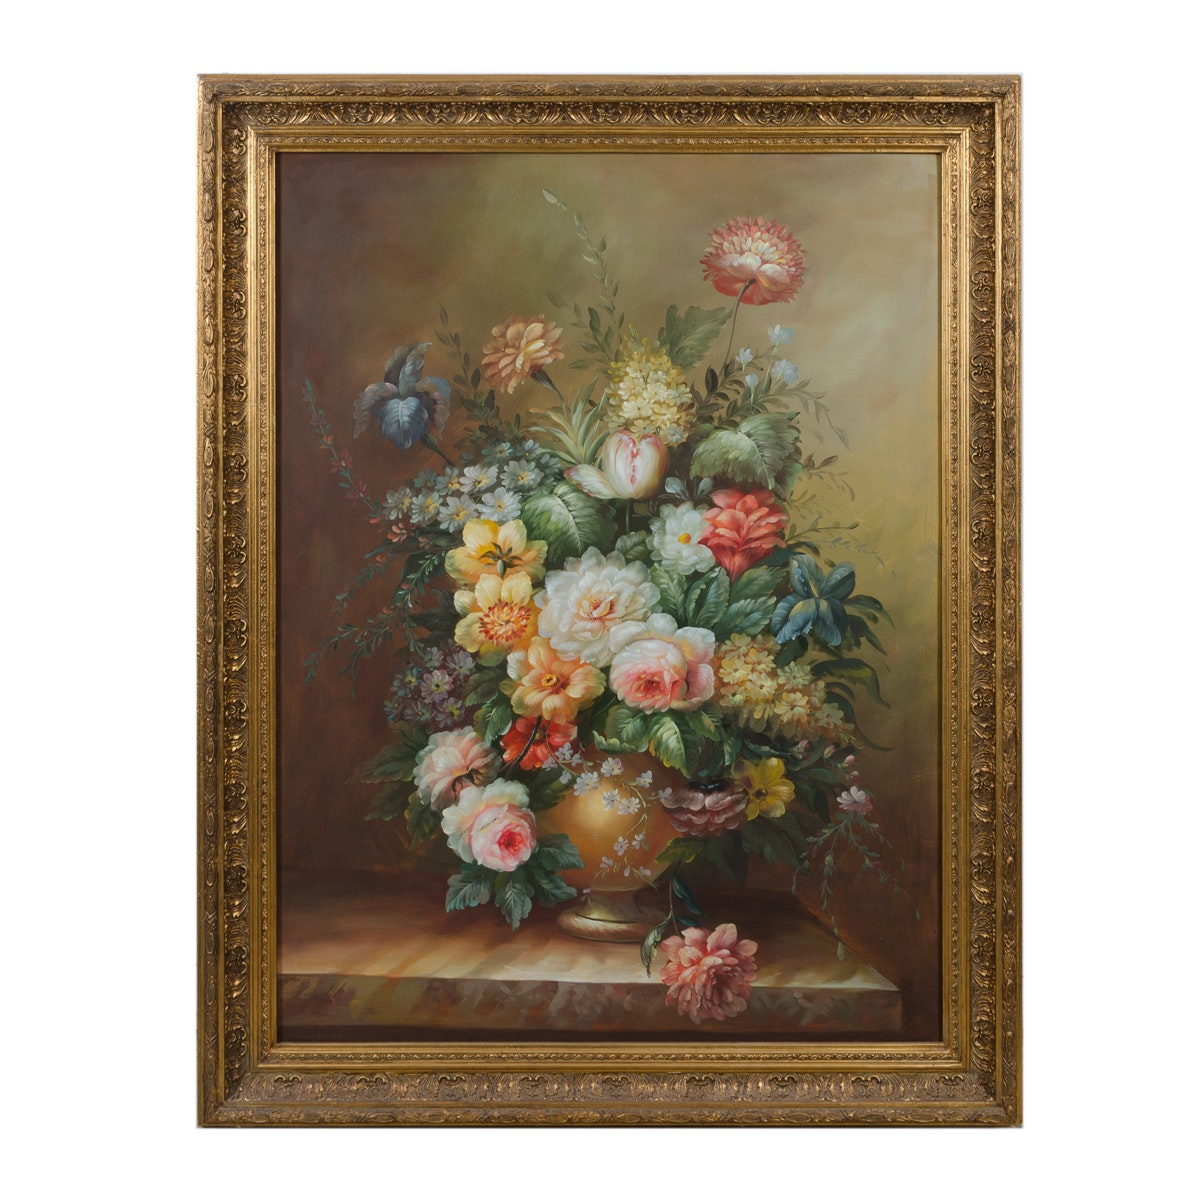 Oil Painting of Floral Still Life